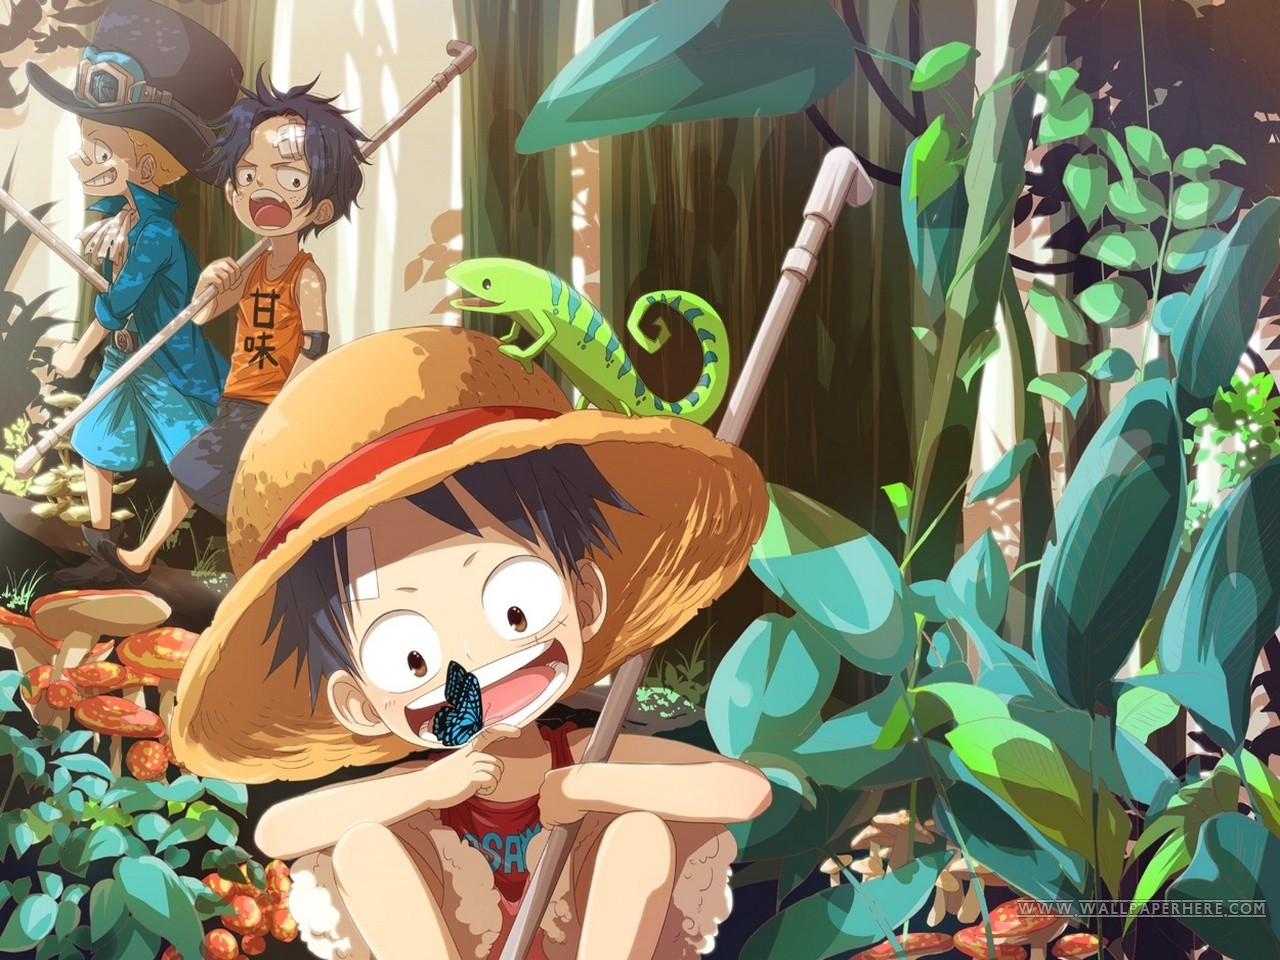 One piece hq wallpaper 1920x1080. one piece anime ace anime monkey d luffy portgas d ace ...